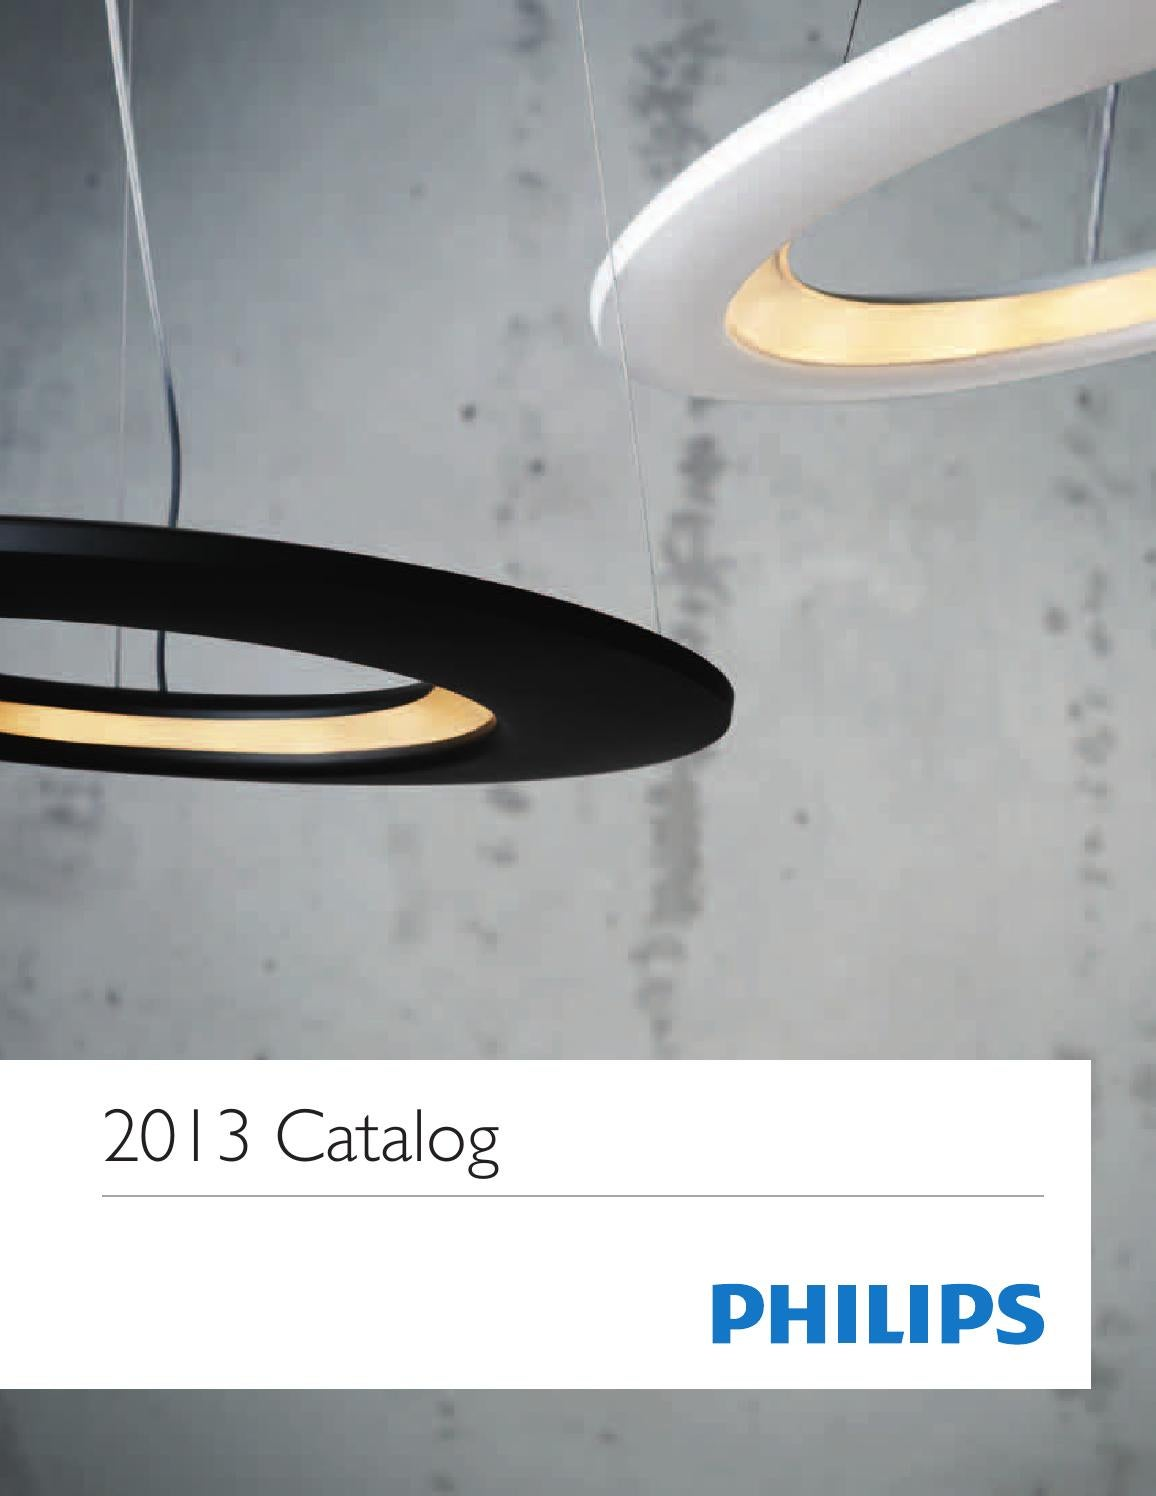 Eclairage Public Led Philips Philips Eclairage Catalogue Catalogue Philips Clairage